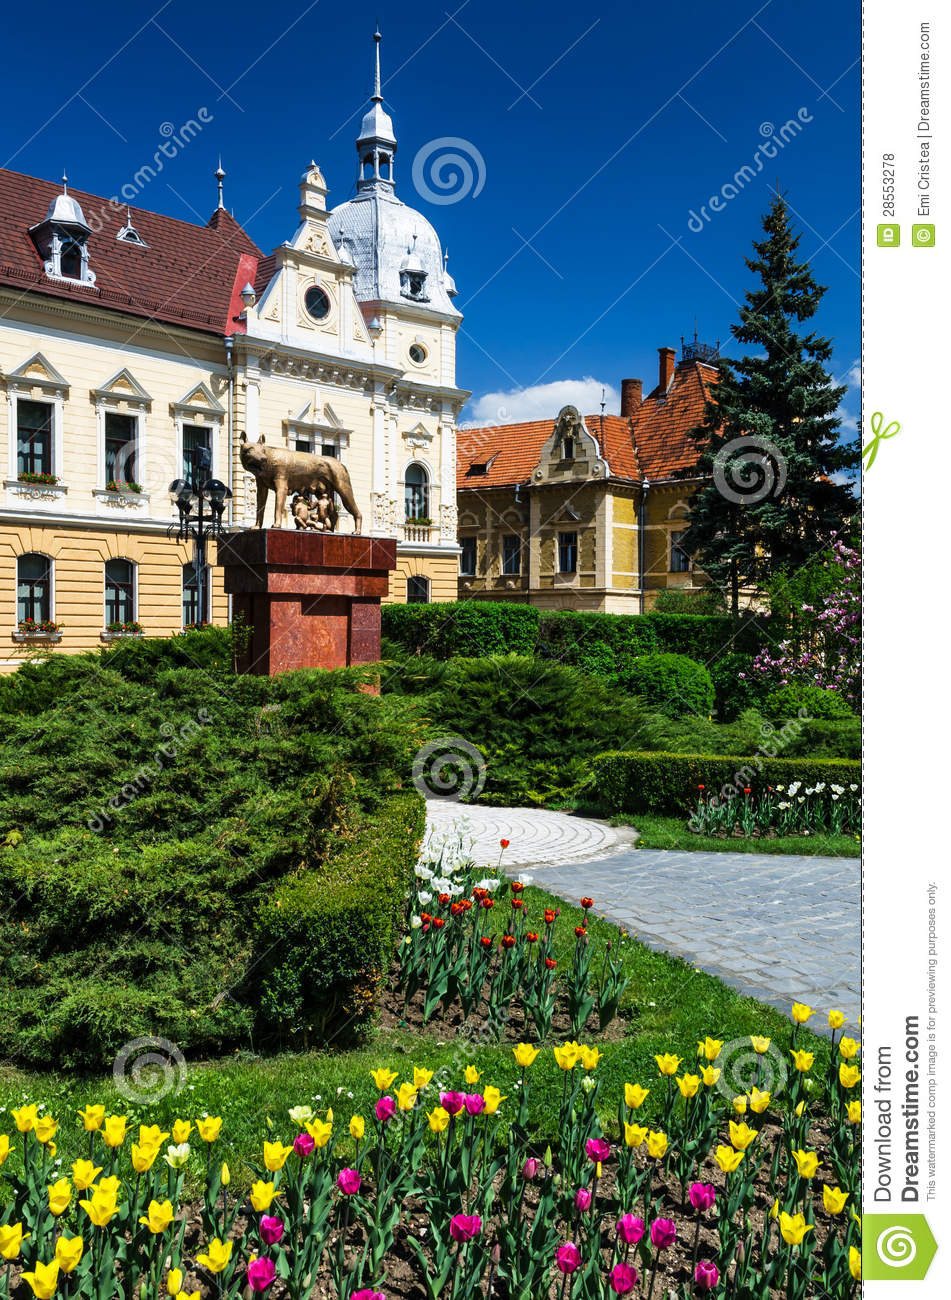 City hall of brasov romania neobaroque architecture royalty free stock photos image 28553278 - Neo romanian architecture traditional and functional house plans ...